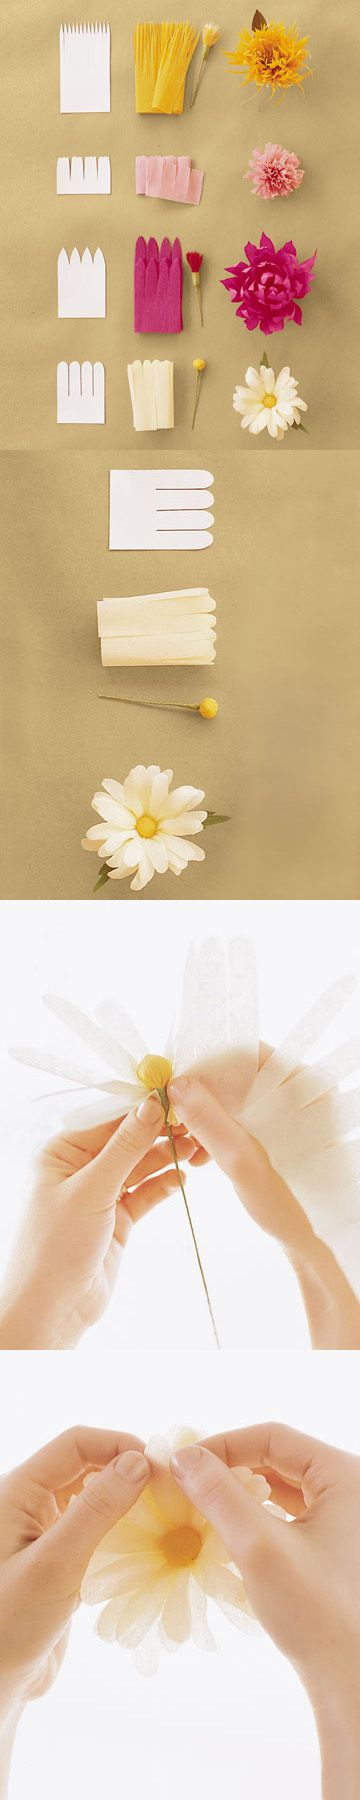 Handmade DIY accessories cool to play the influx of material paper chrysanthemums, elegant to not work.